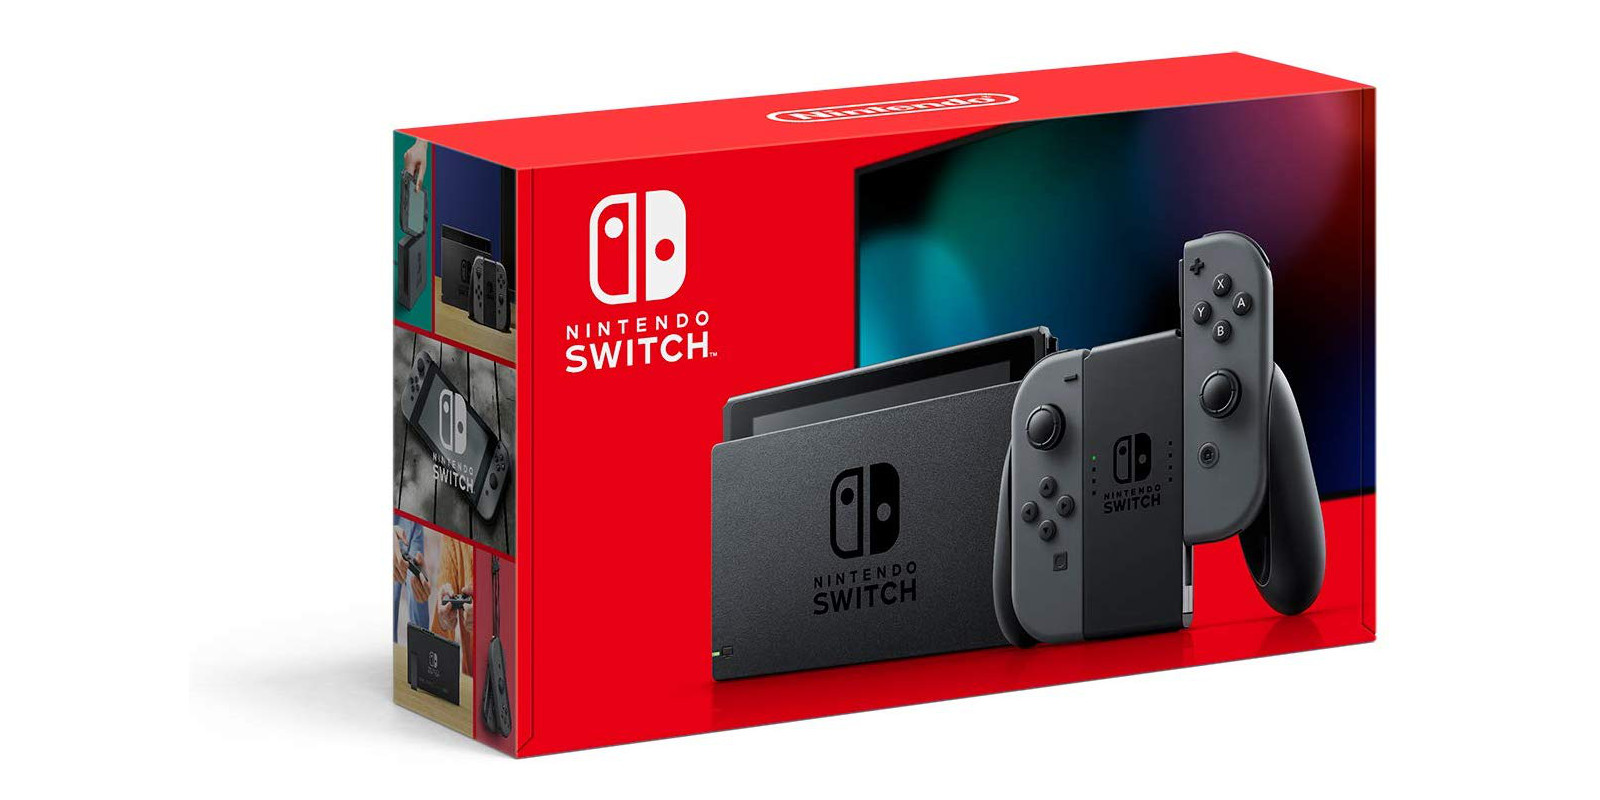 Latest Nintendo Switch drops to new Amazon all-time low with limited time deal